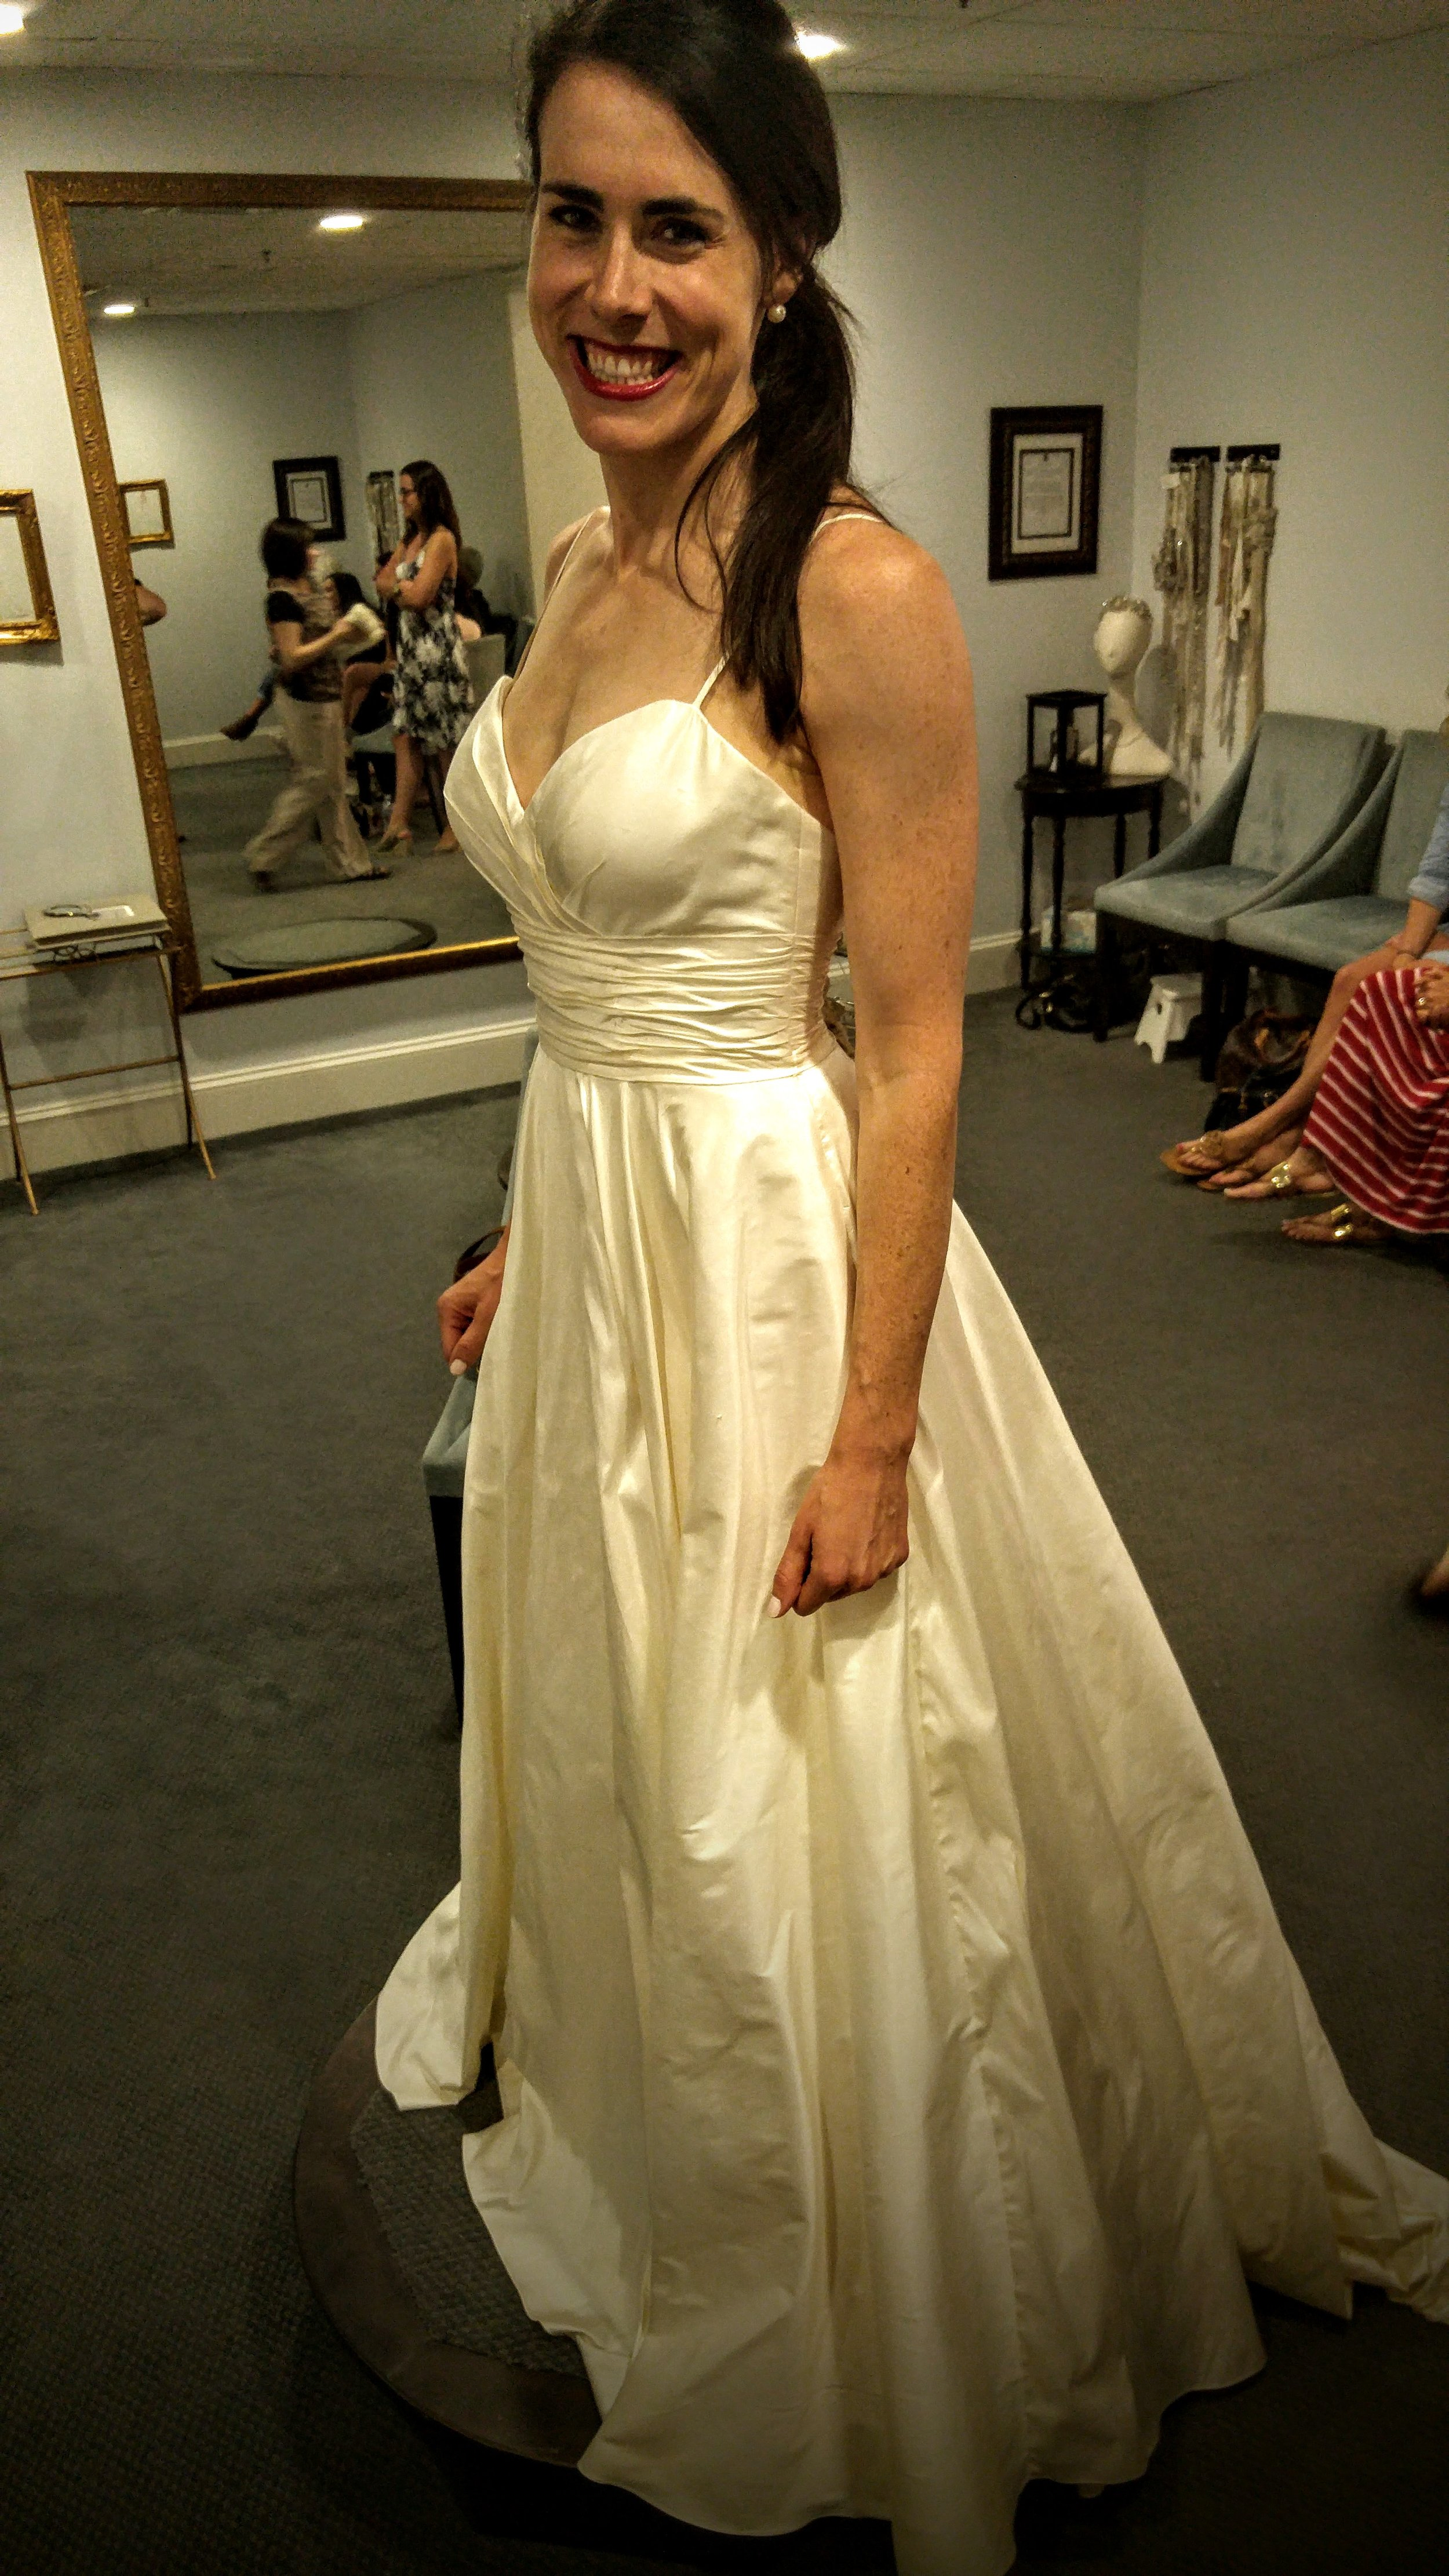 Nowwwww we're getting somewhere (note: the lighting makes this dress look yellowish, but it was really ivory).This was the first dress I tried on that fit me *perfectly*. The only problem is that it was too low-cut and I didn't like the spaghetti straps. But then we added a jacket: